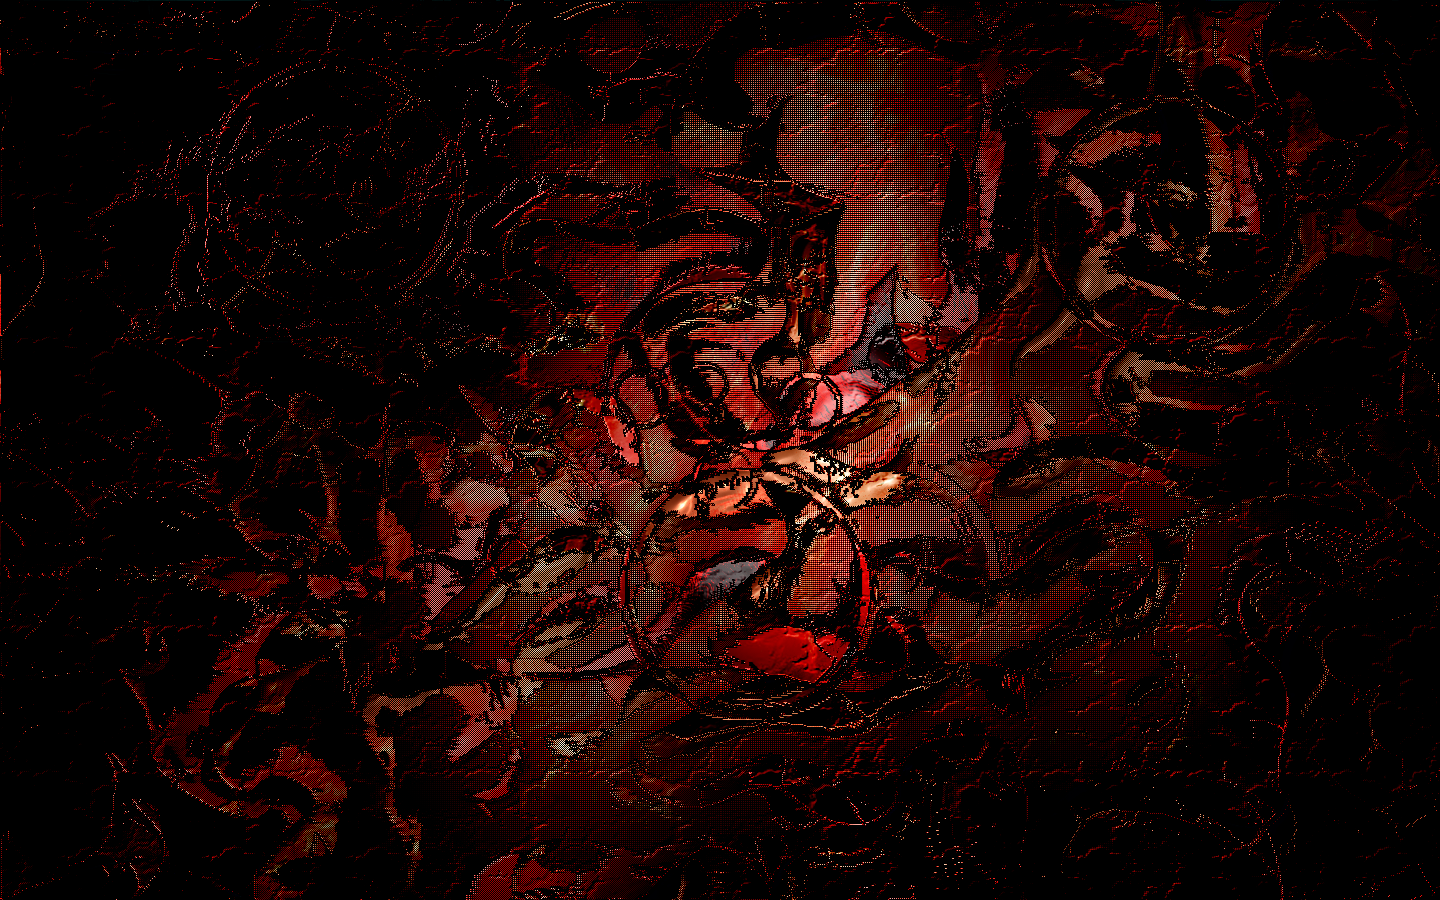 red wallpaper, abstract wallpaper, abstract art